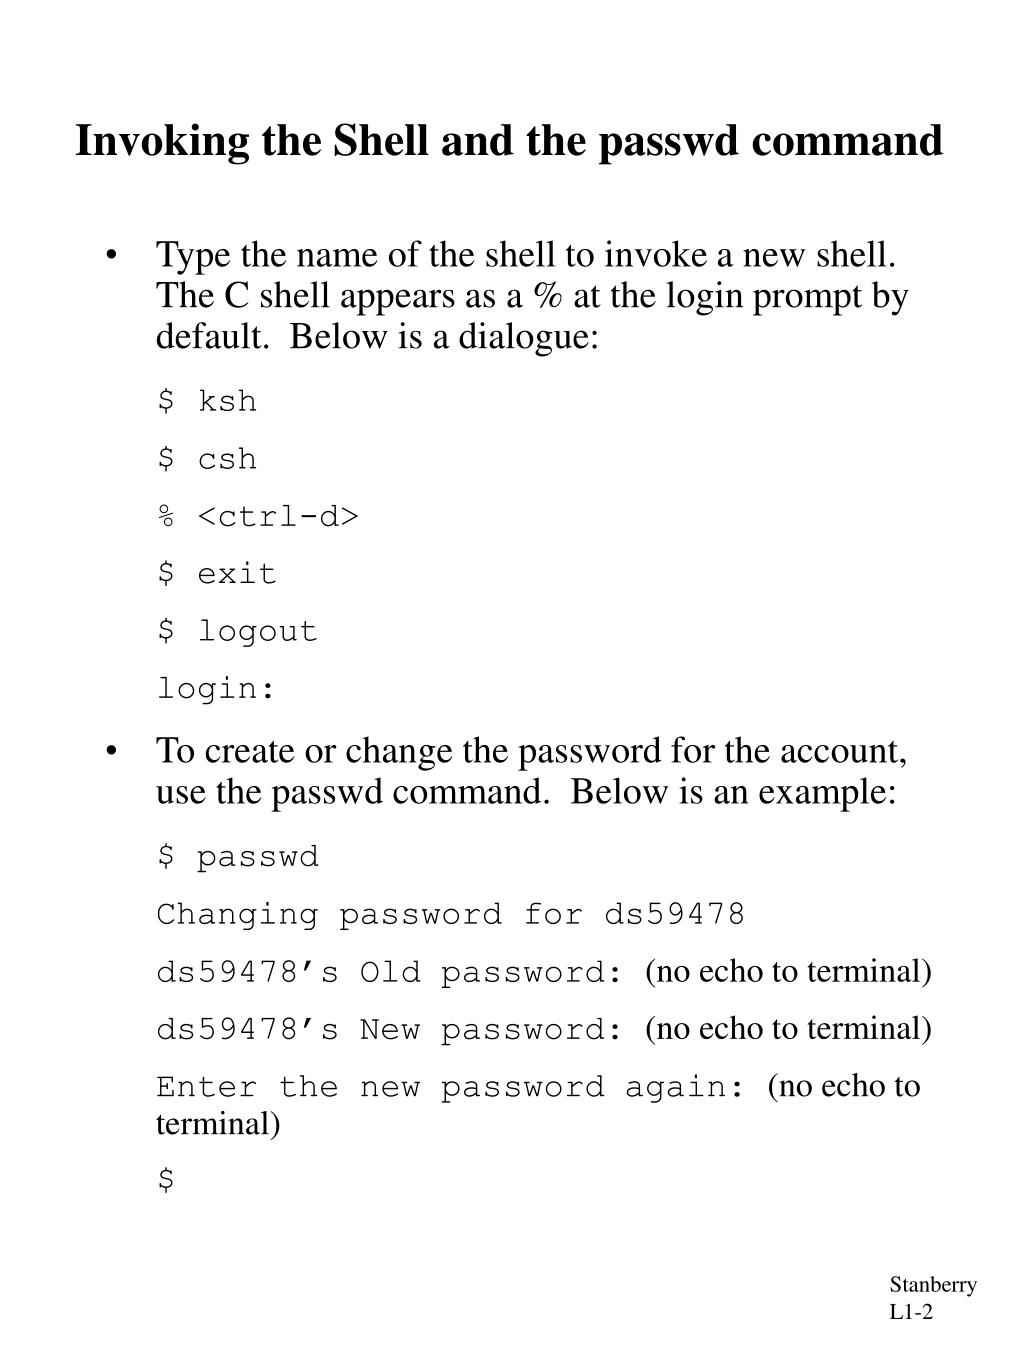 Invoking the Shell and the passwd command